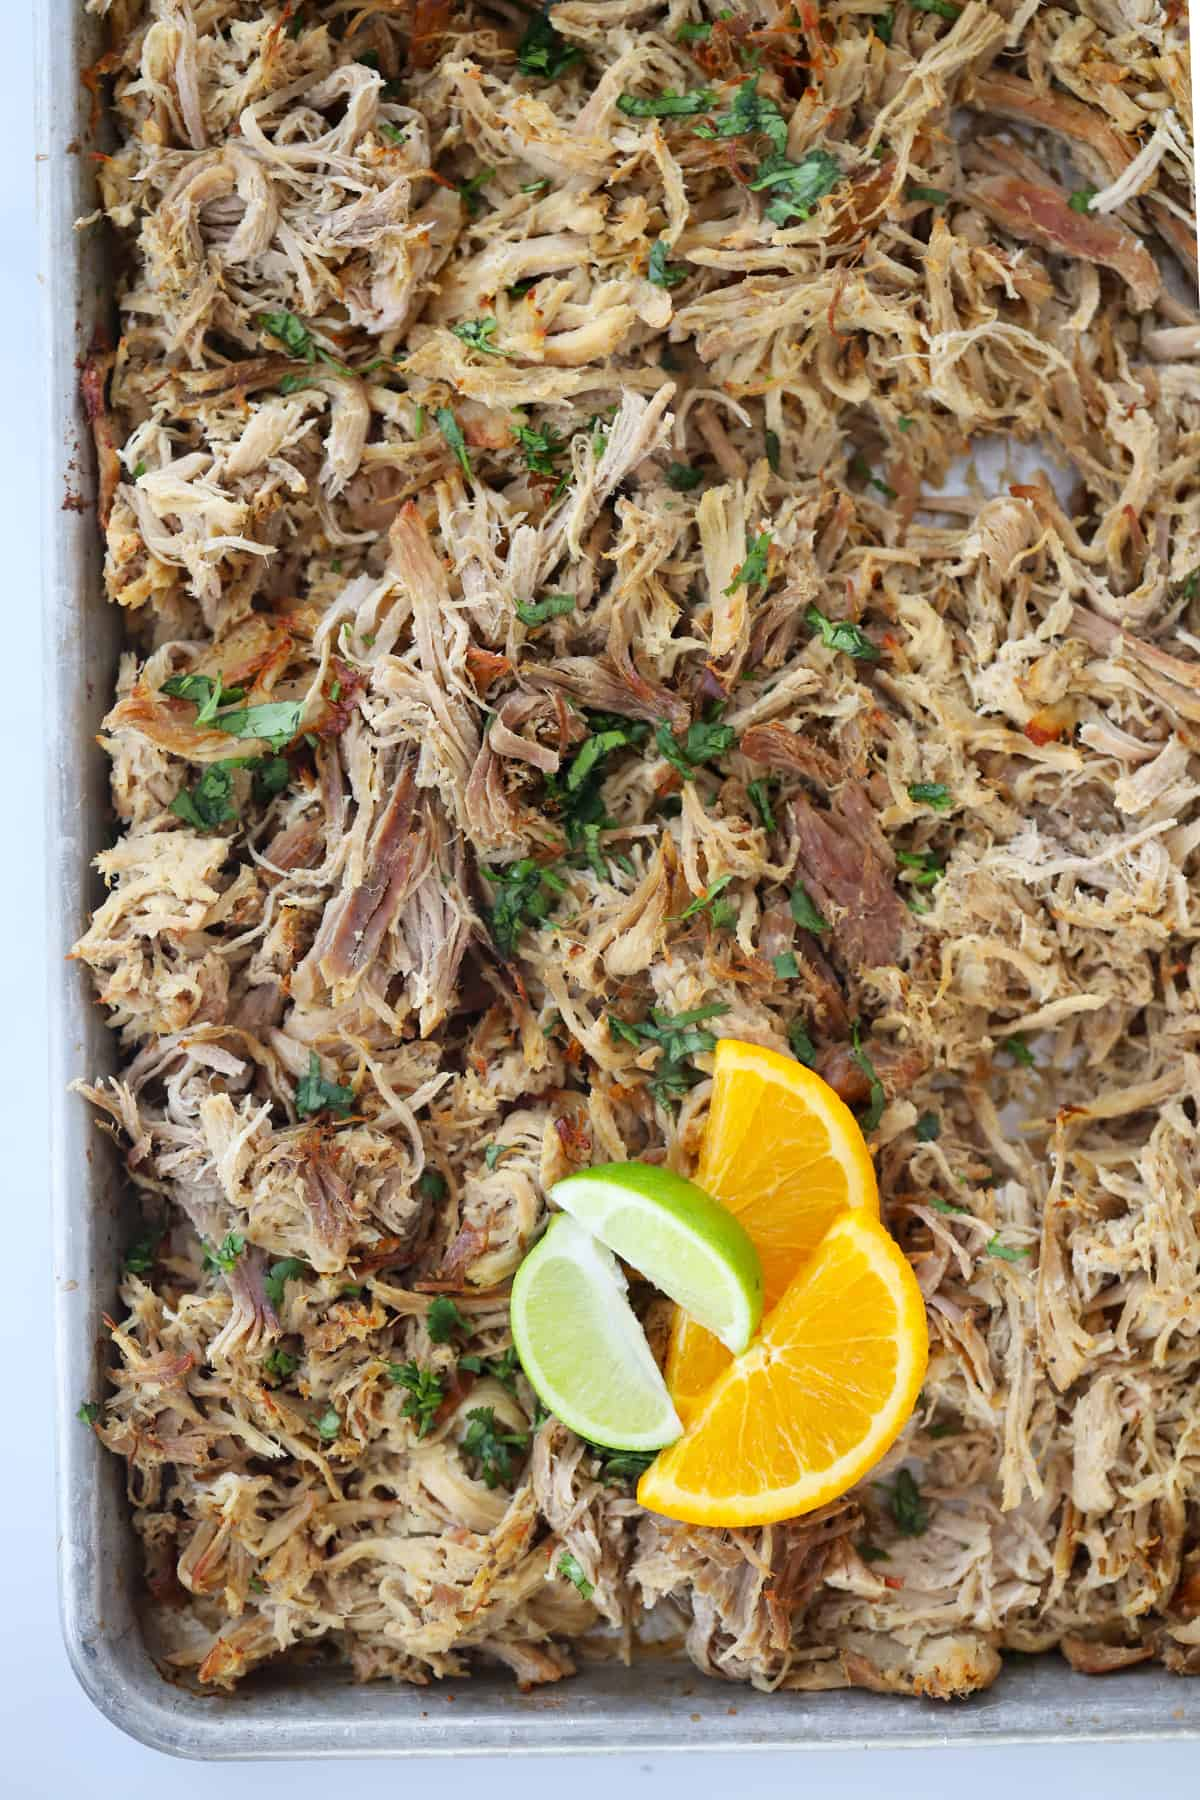 Carnitas spread out on a sheet tray and garnished with fresh cilantro.